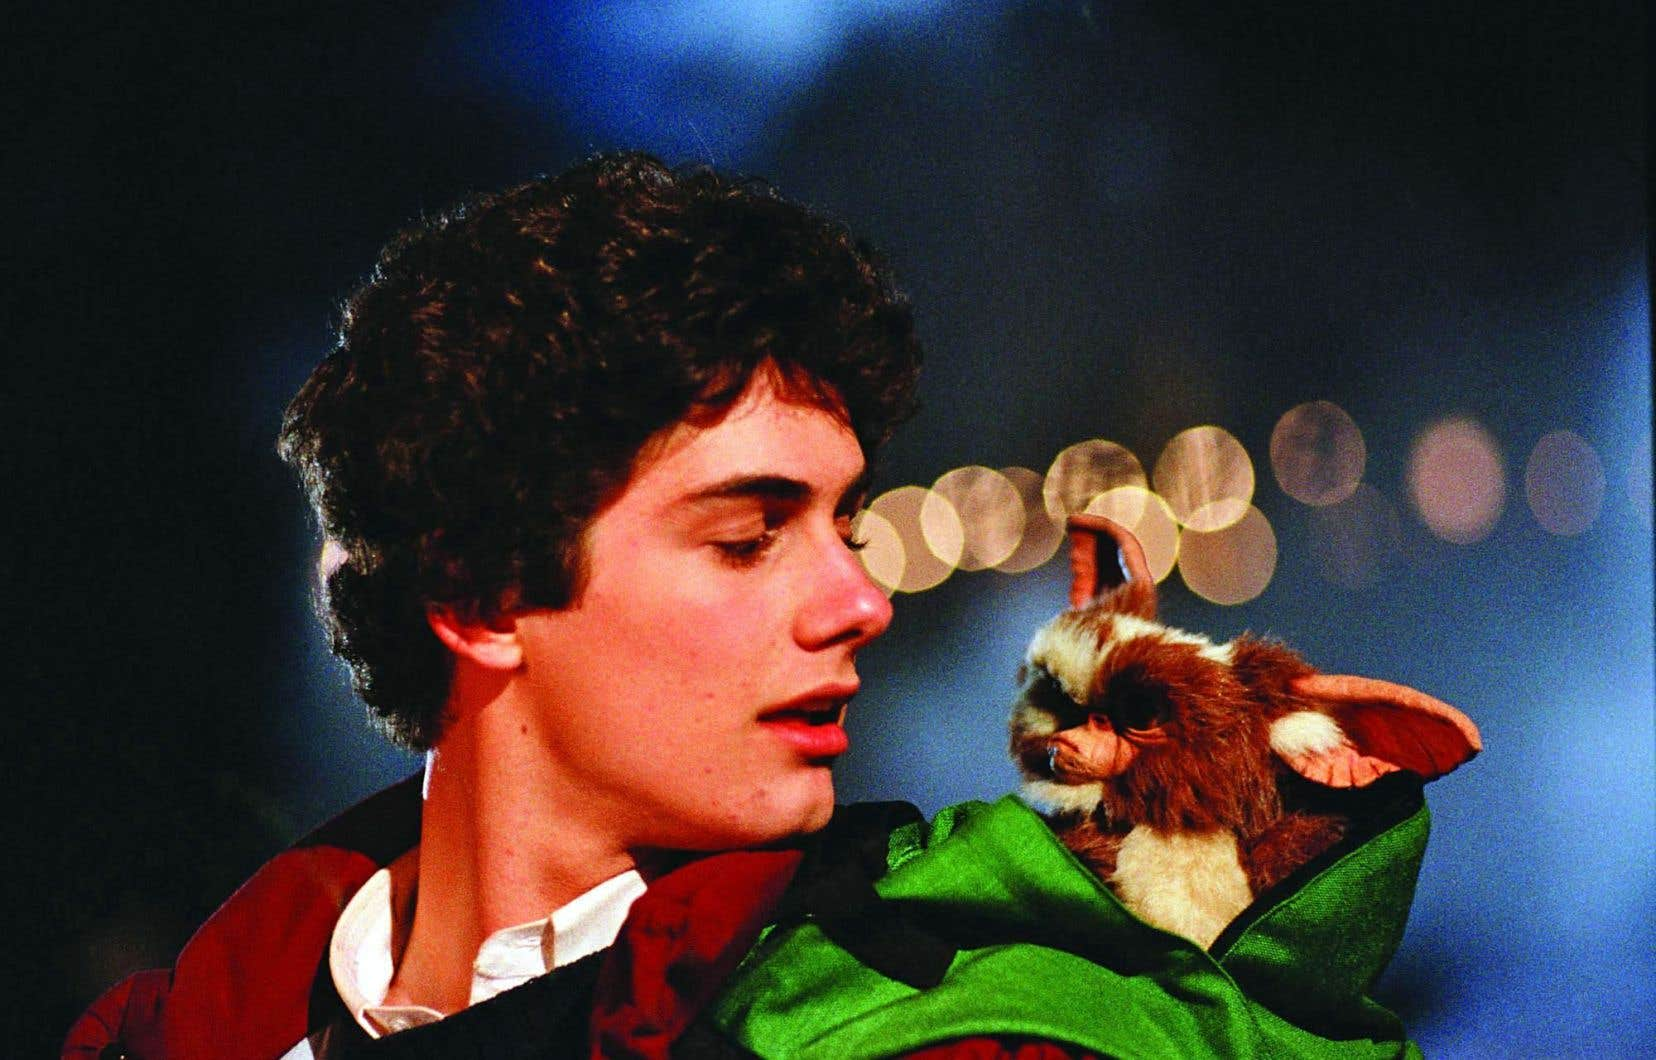 Zach Galligan en compagnie de l'adorable créature velue Gizmo